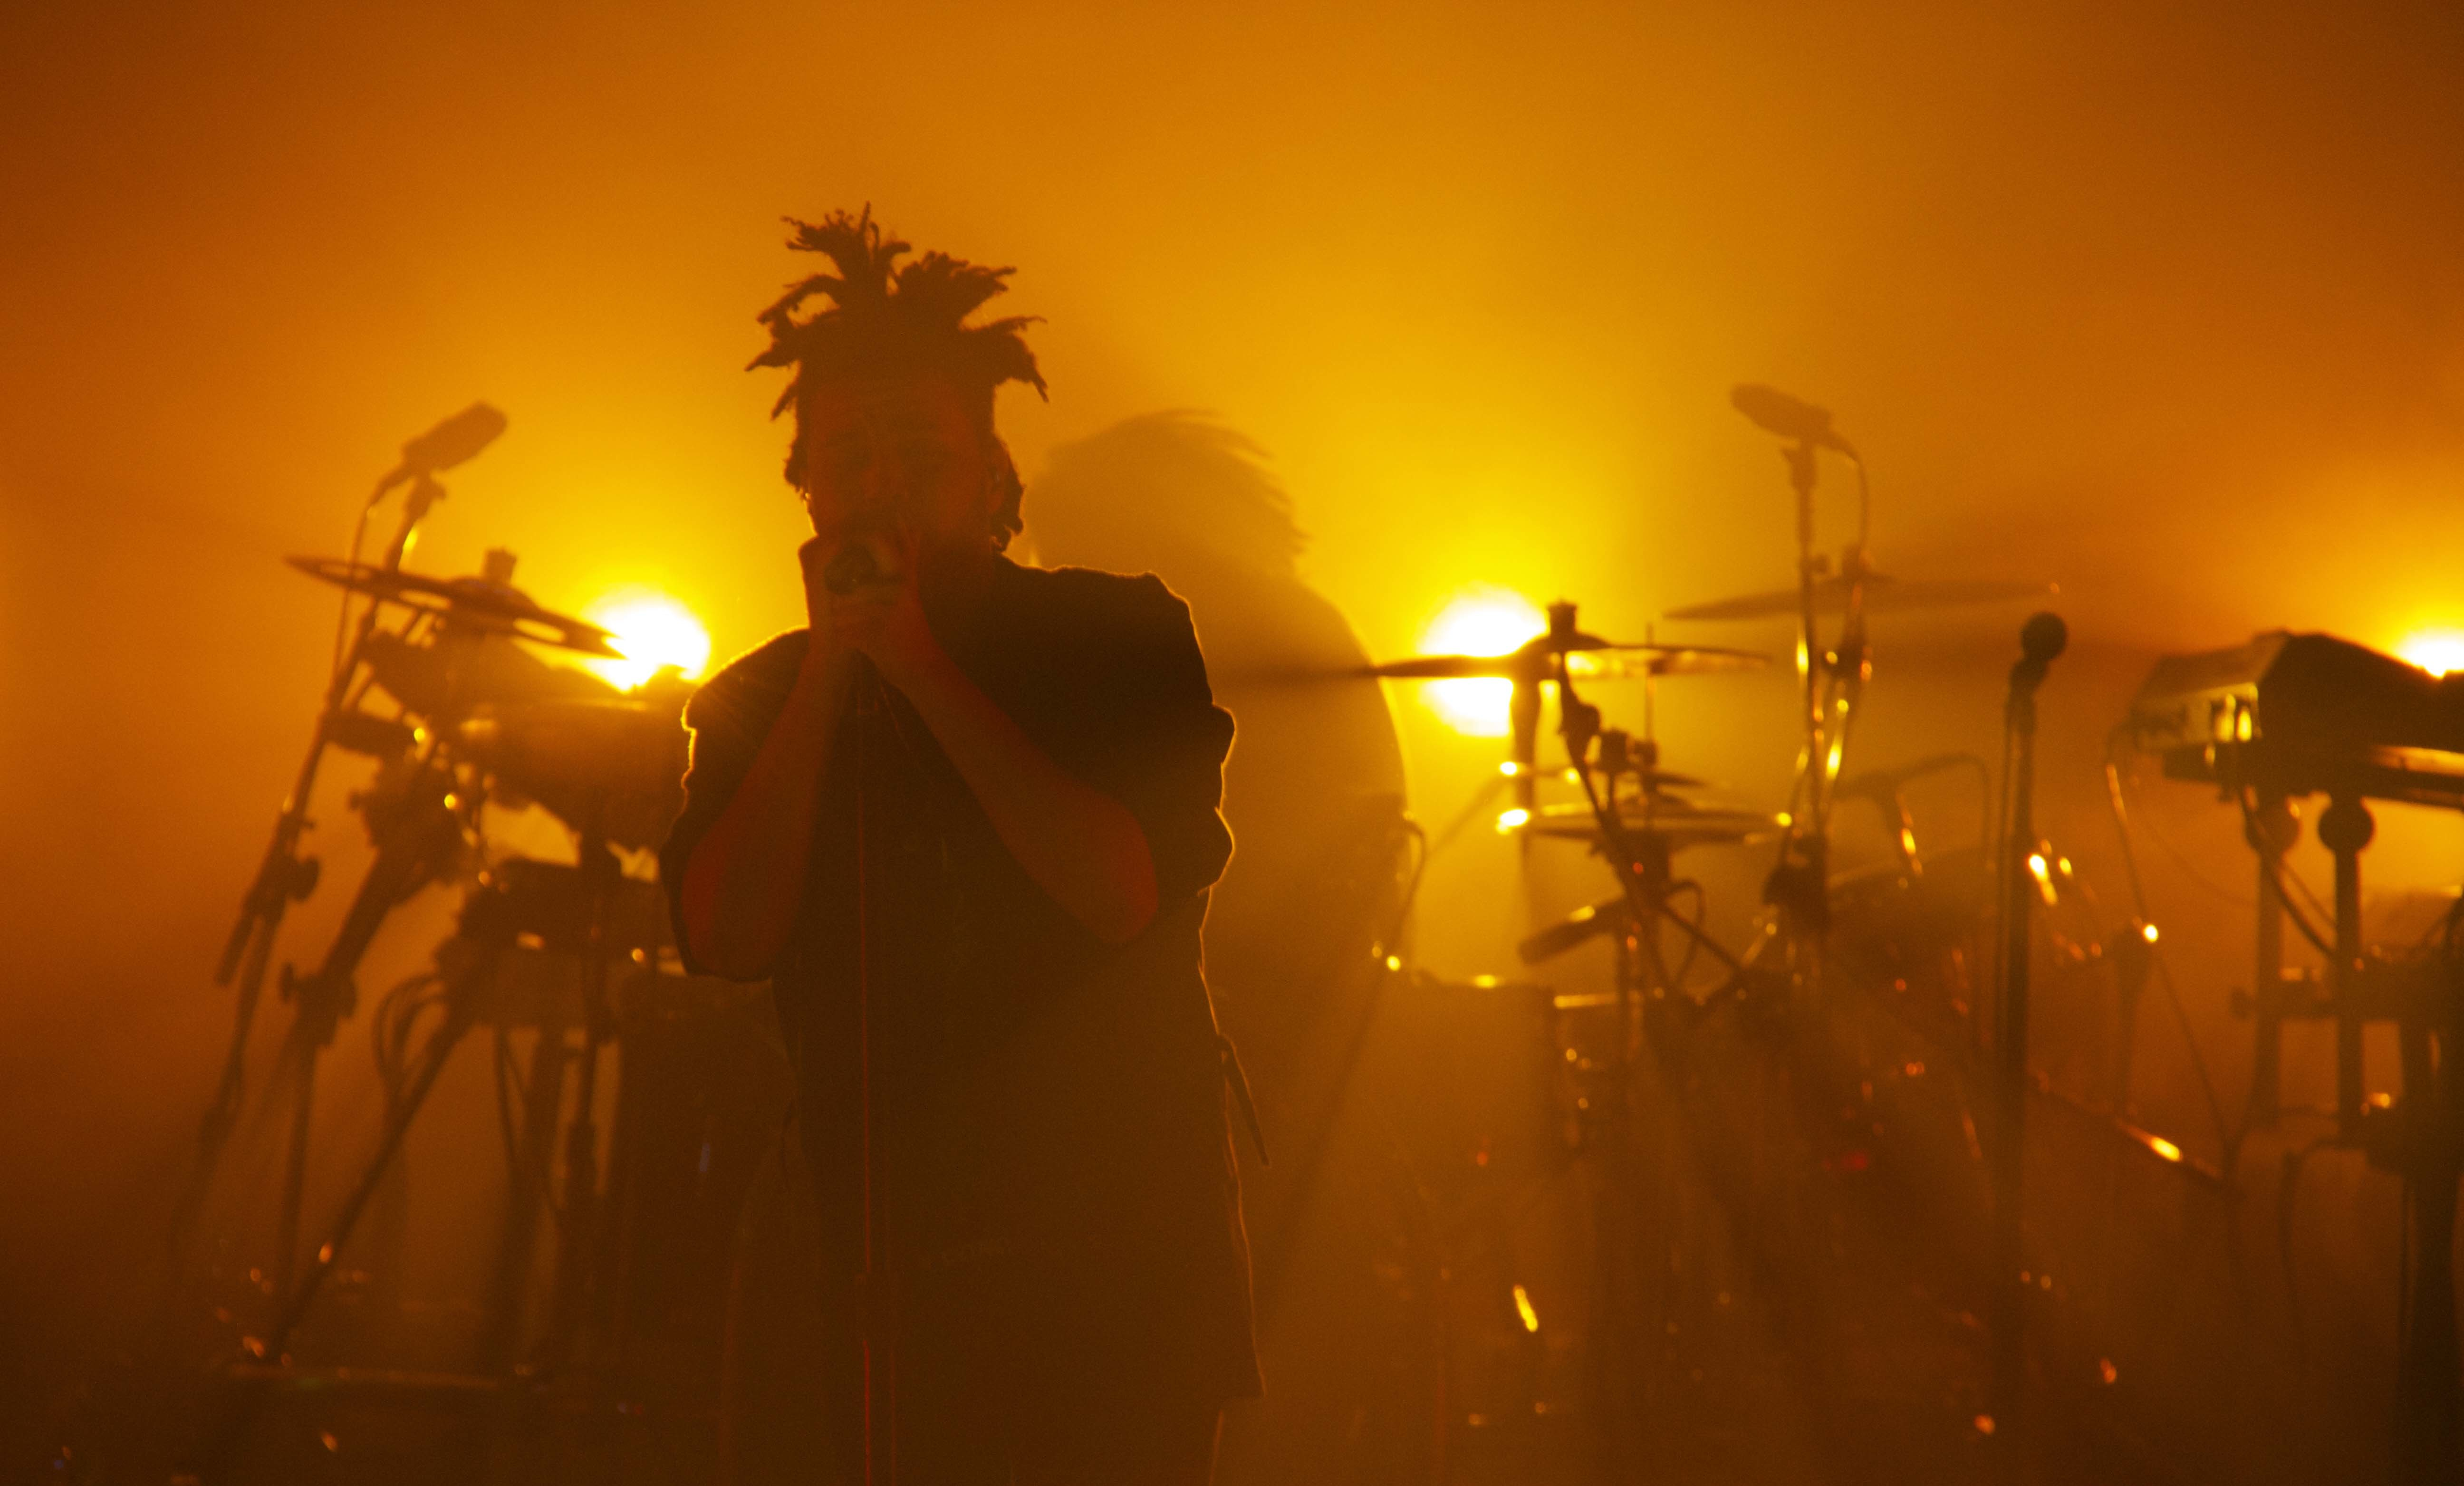 File:The Weeknd at Massey Hall October 17, 2013 amber ...